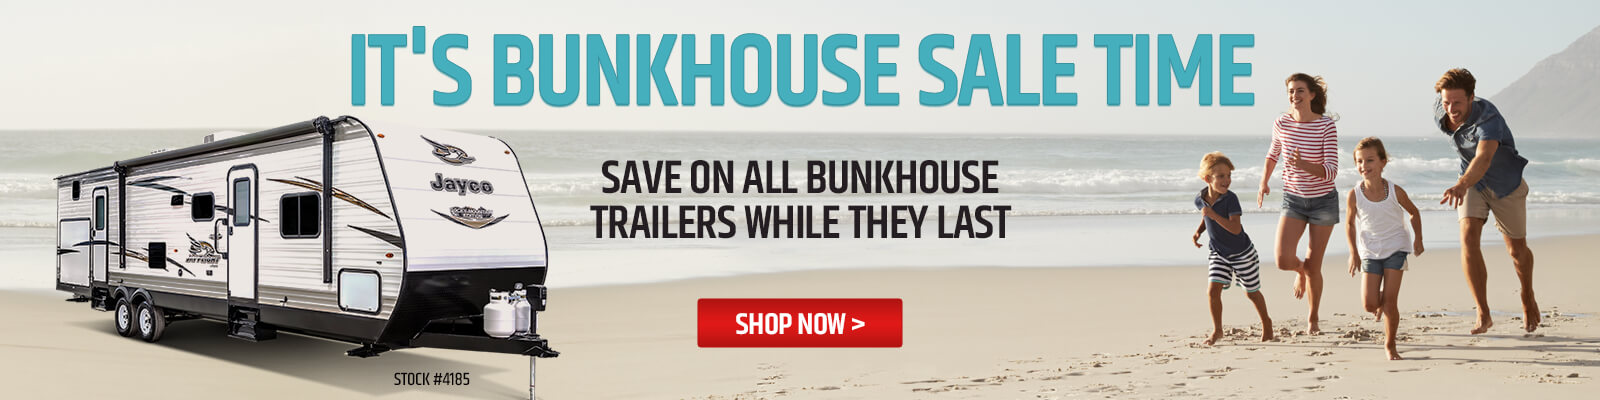 Bunkhouse Sale Time